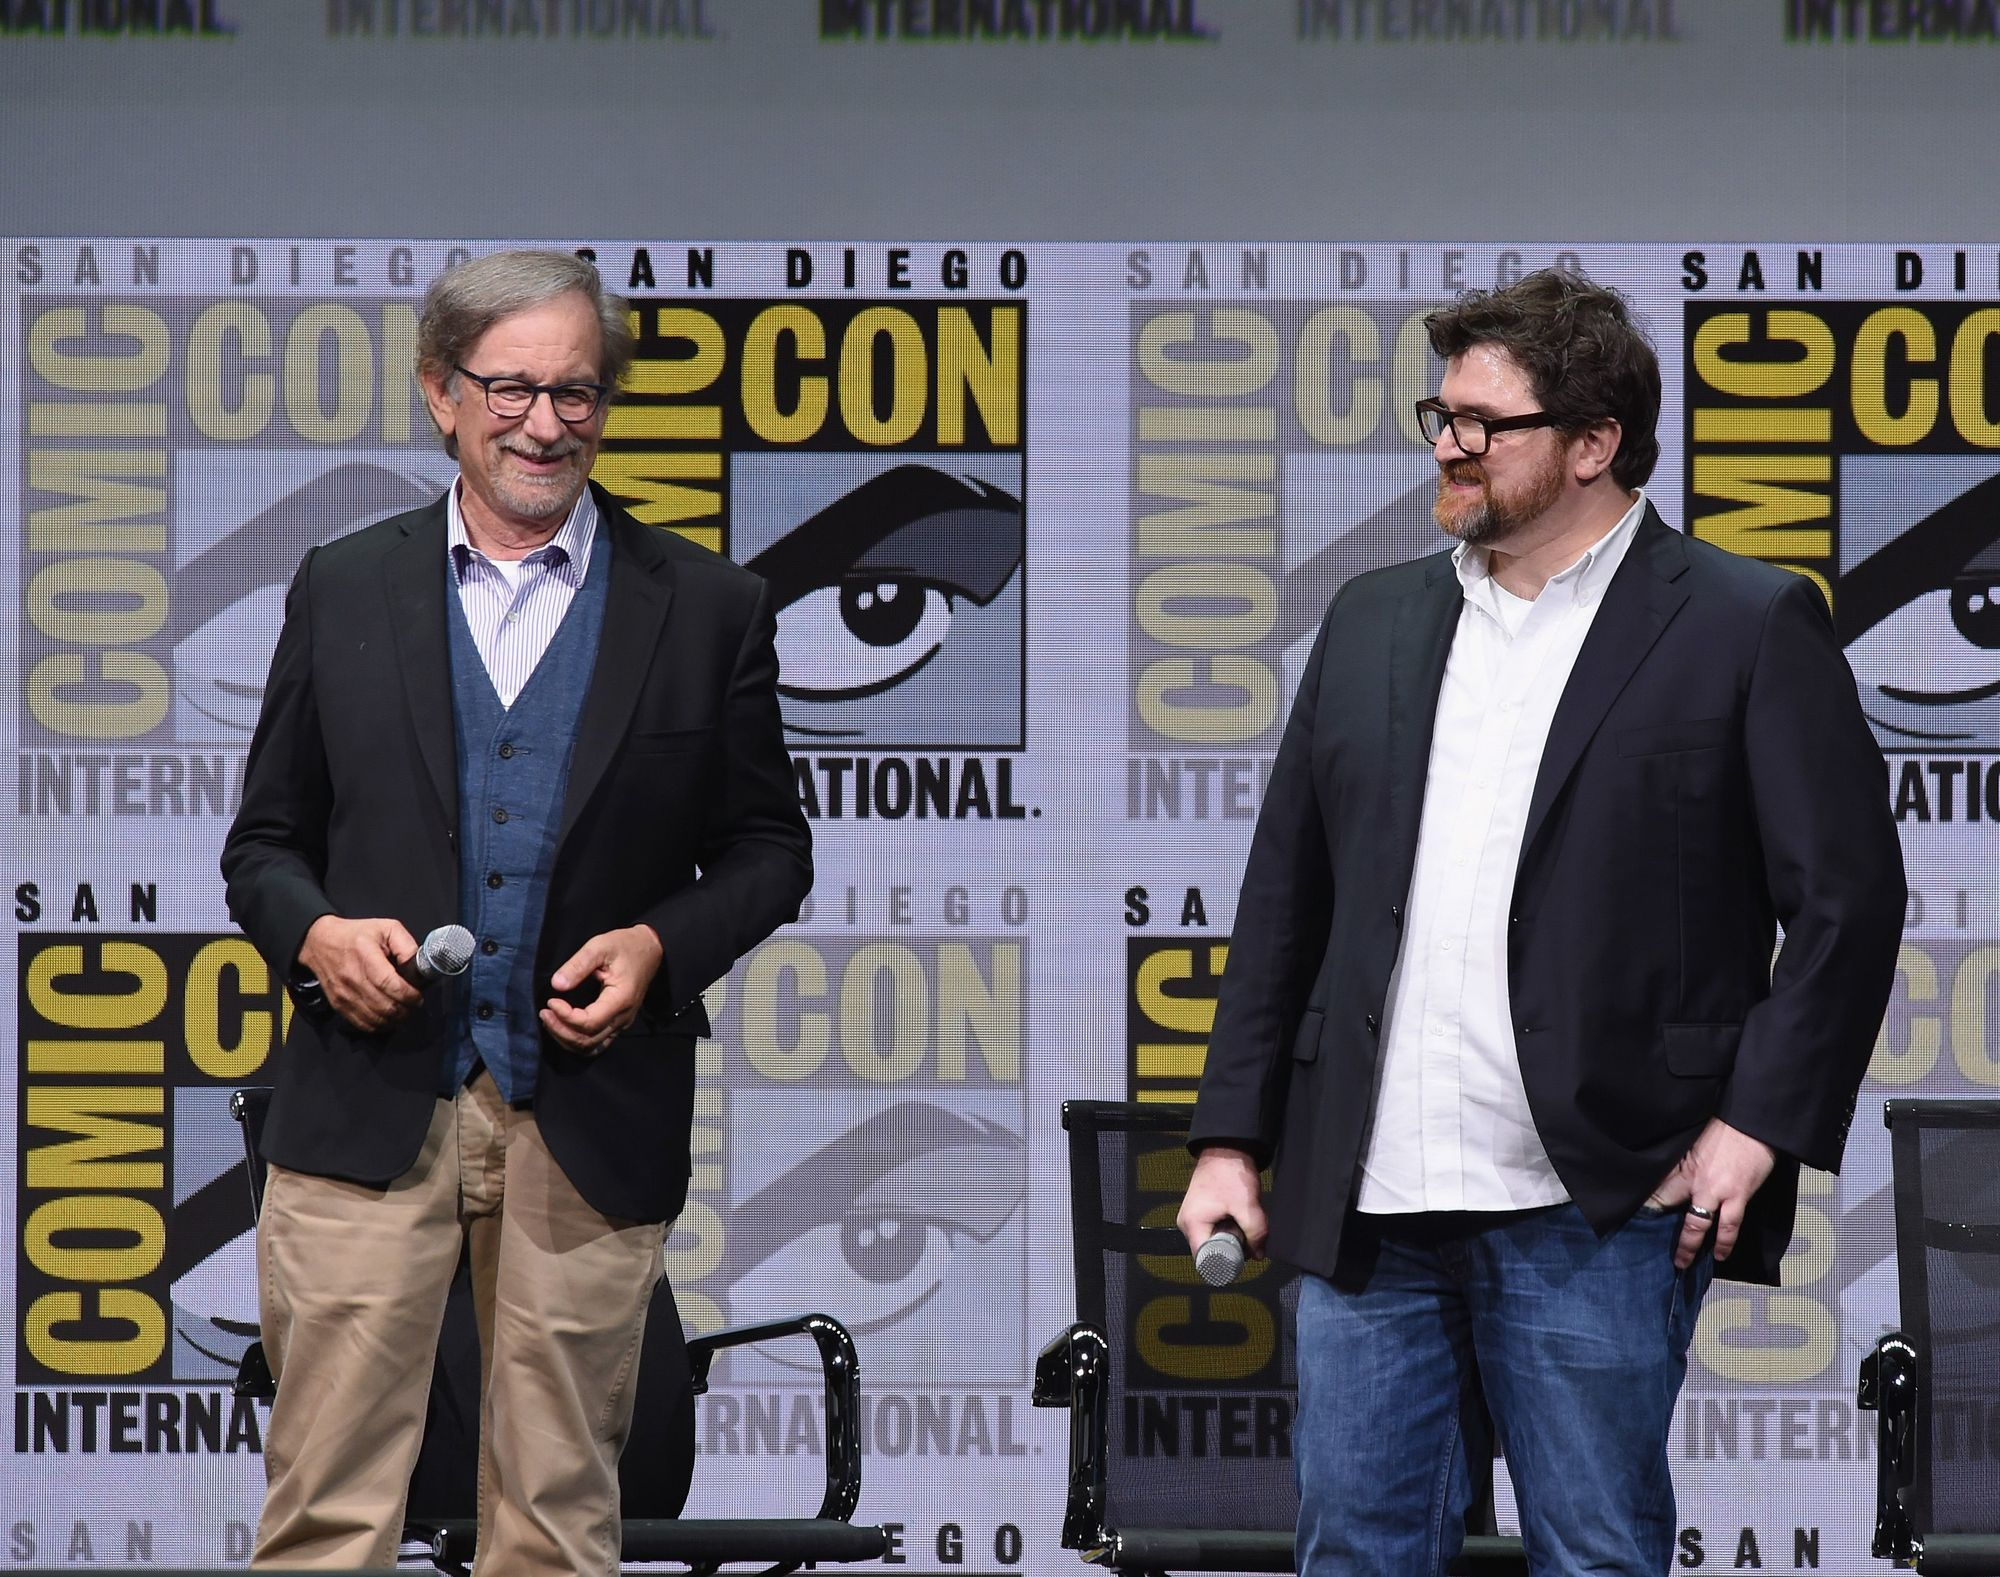 Ready player One's author Ernest Cline with director Steven Spielberg at San Diego's Comic Con, 2018.